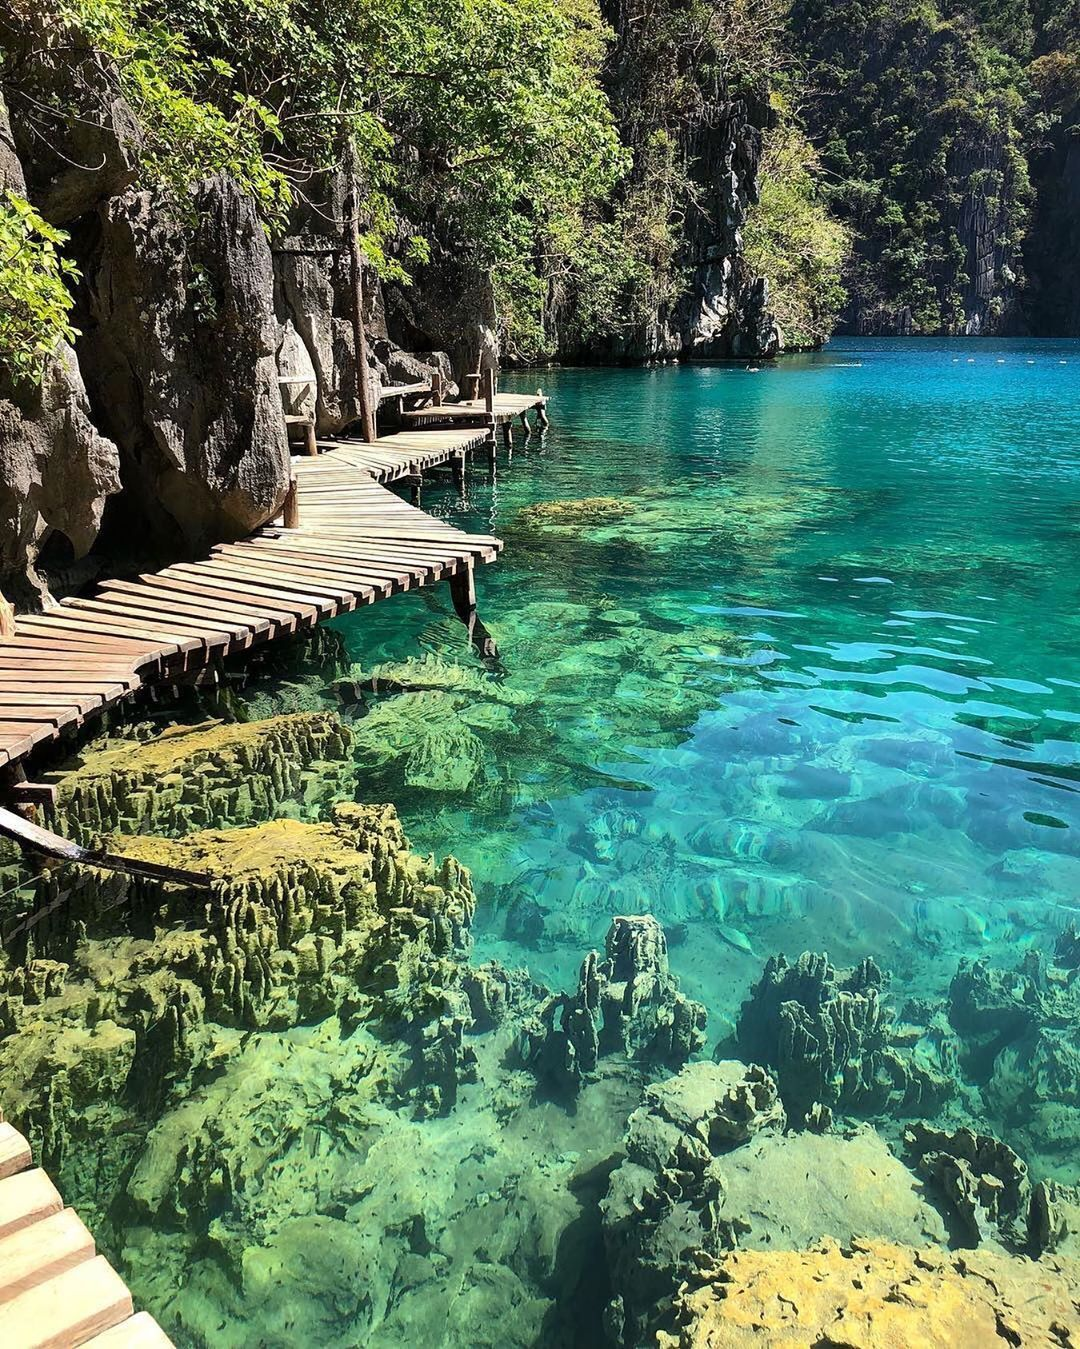 Top 10 Tourist Attraction To Visit in Philippines